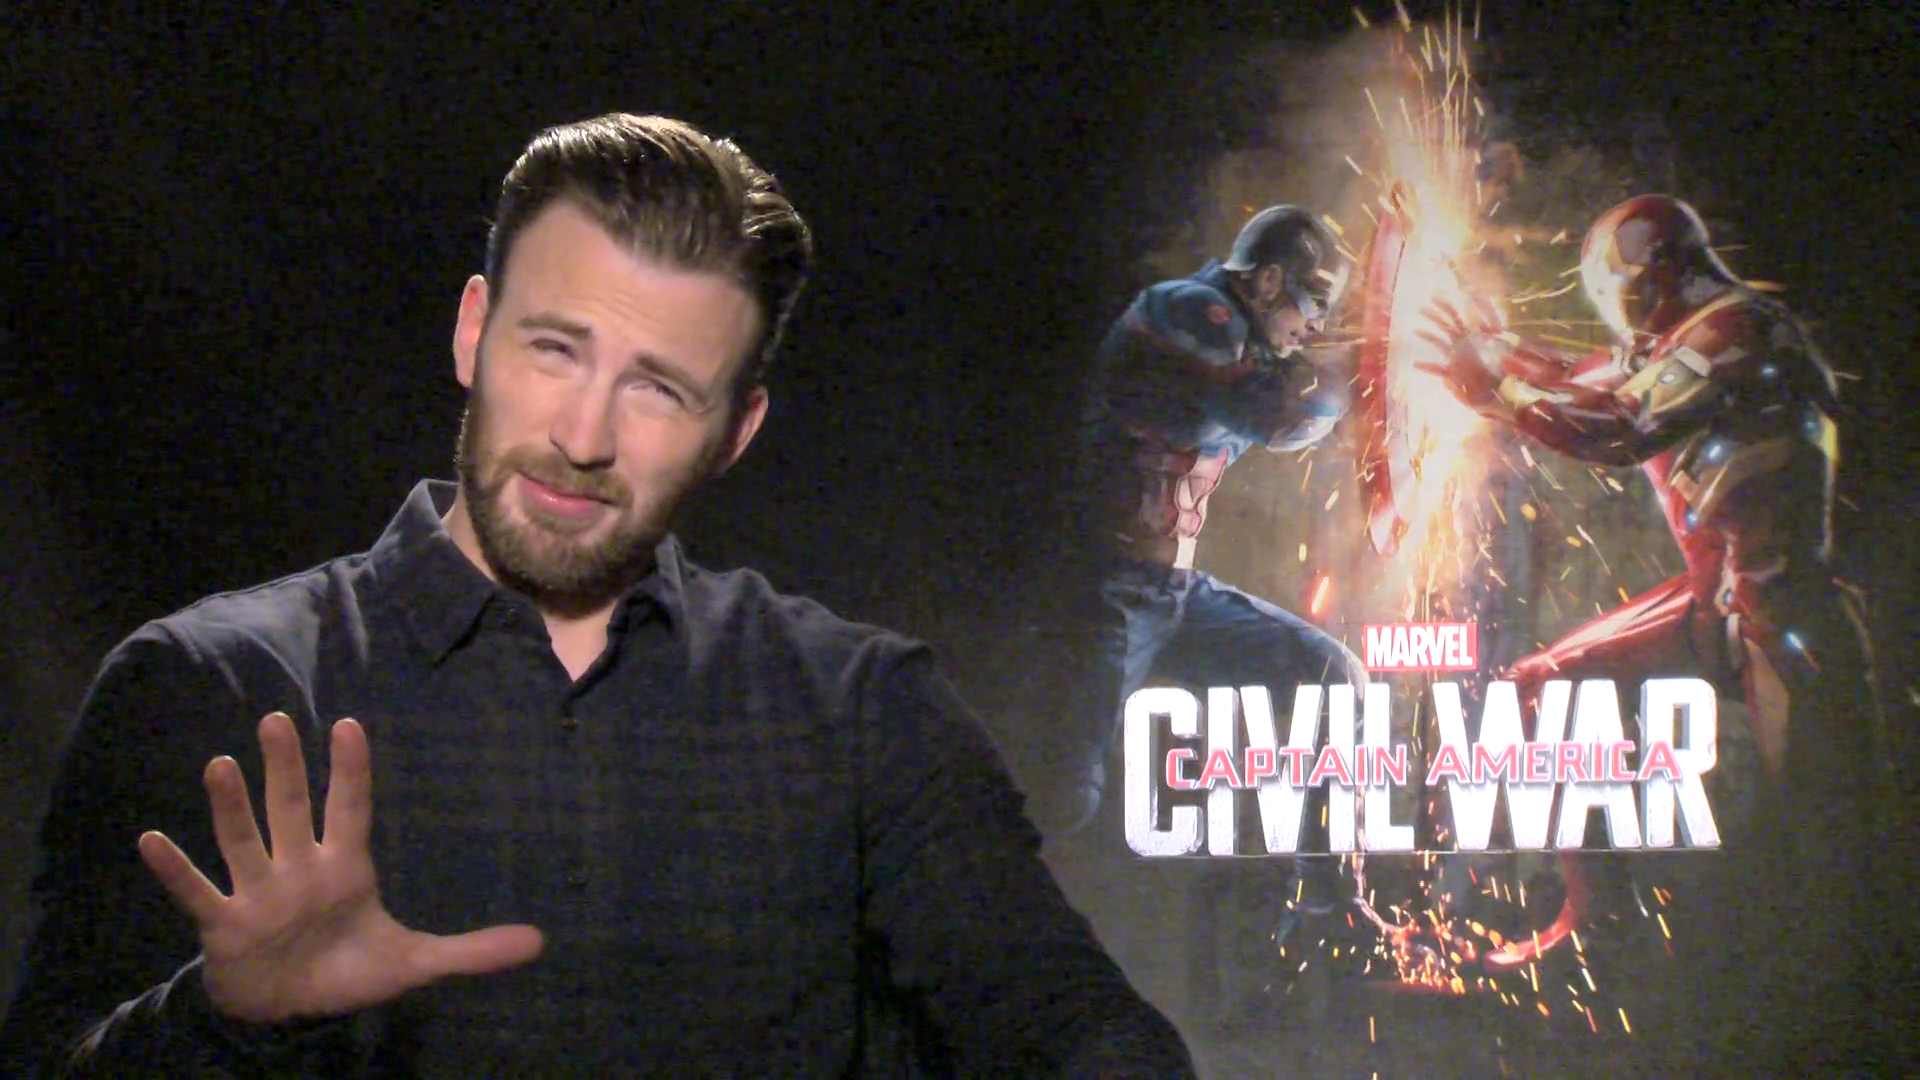 S.H.I.E.L.D. or Shield With Captain America: Civil War's Chris Evans